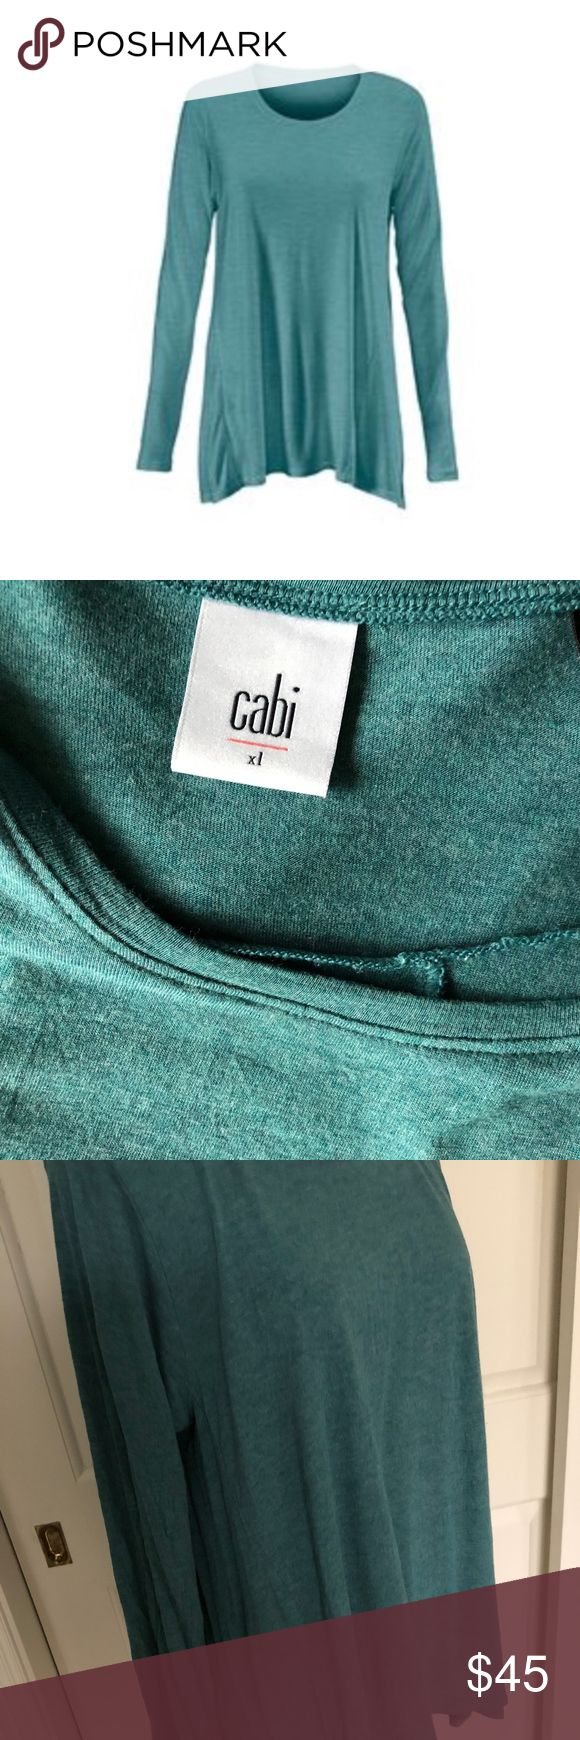 """CABI HEATHER GREEN """"SWING"""" TEE - XL ADORABLE AND SUPER SOFT LONG SLEEVE TOP FROM CABI  THE """"SWING TEE""""   HEATHERED GREEN  LONG SLEEVE  SLIGHTLY FLOWY AND FLATTERING DESIGN  IN PERFECT CONDITION, LIKE NEW  NO DAMAGE AND FROM A SMOKE FREE HOME CAbi Tops Tees - Long Sleeve"""